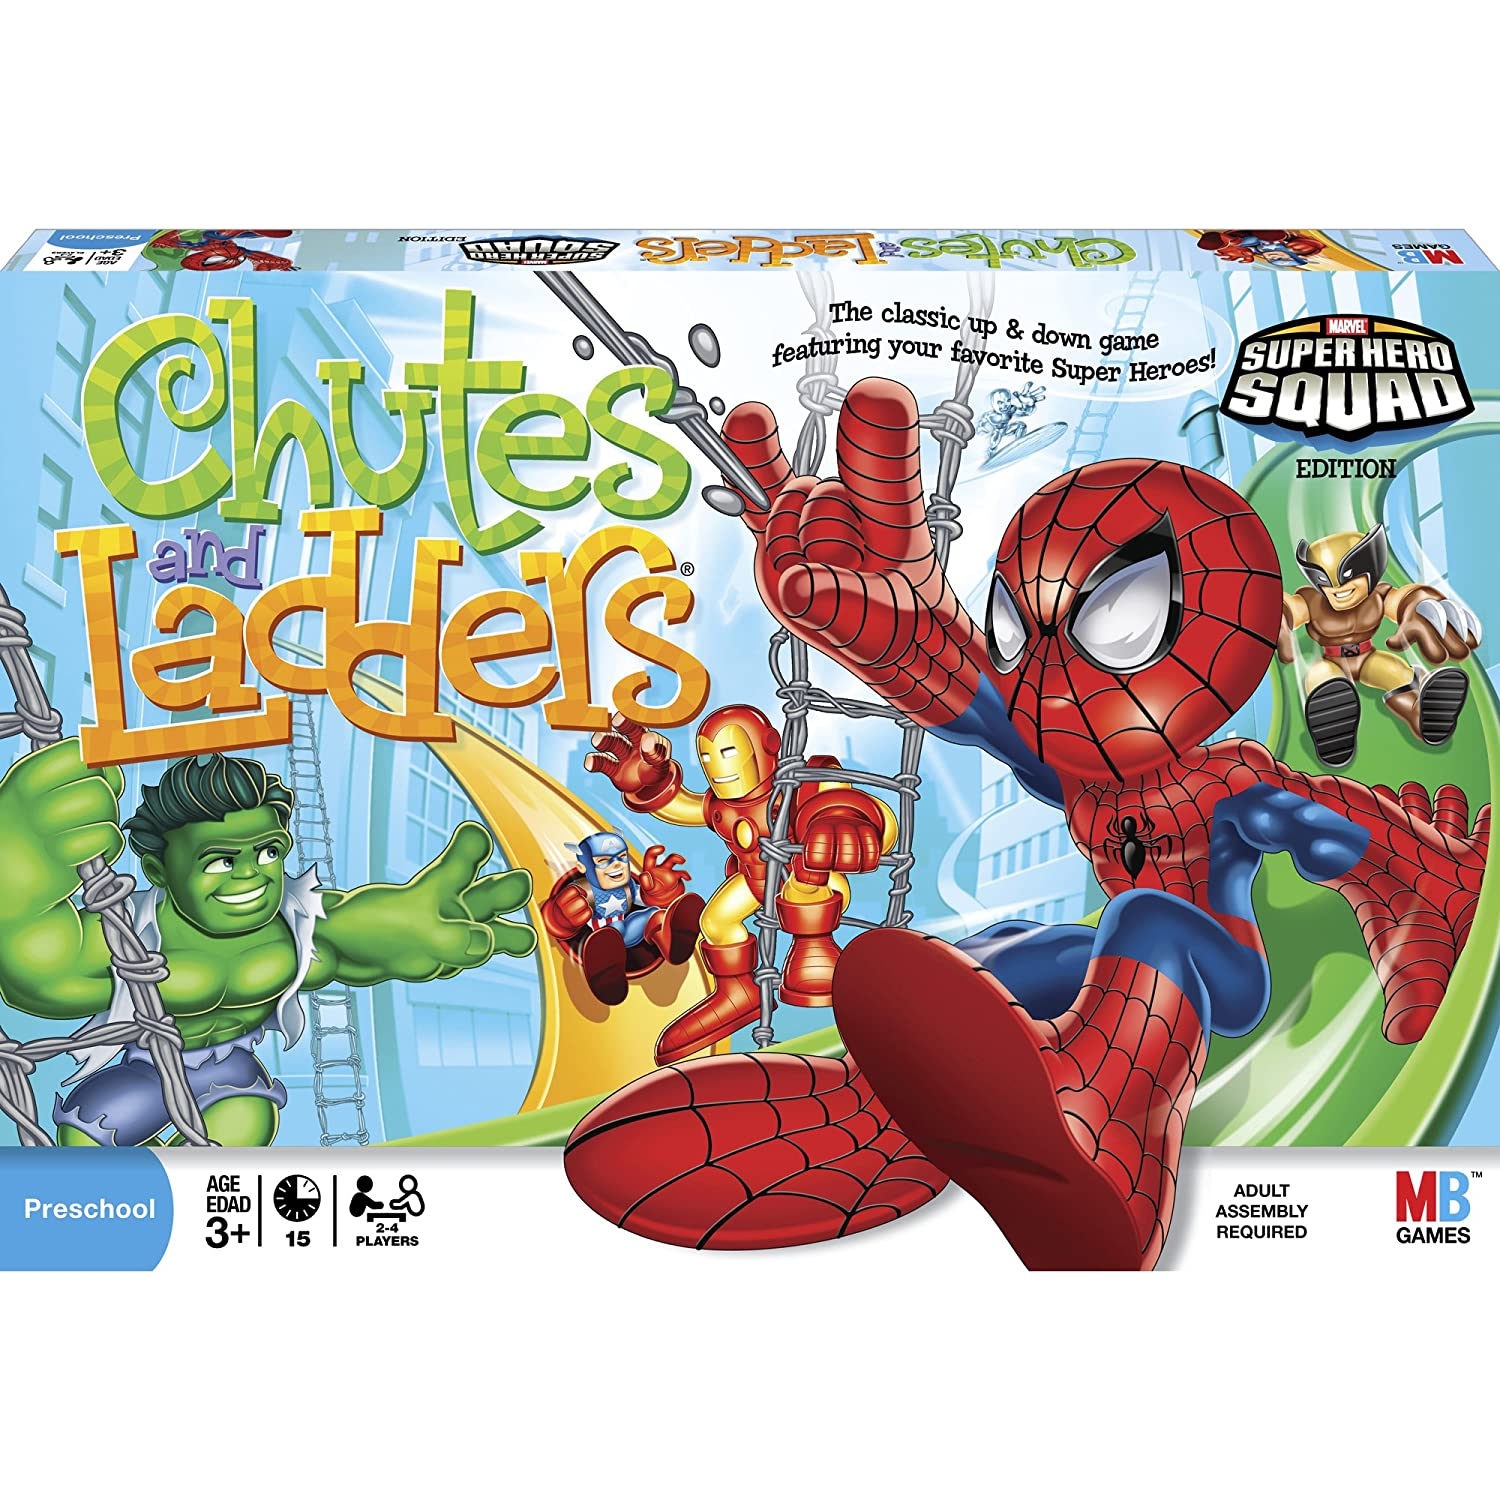 Trendy Christmas Gifts Board Games for 4 Year Old Boys